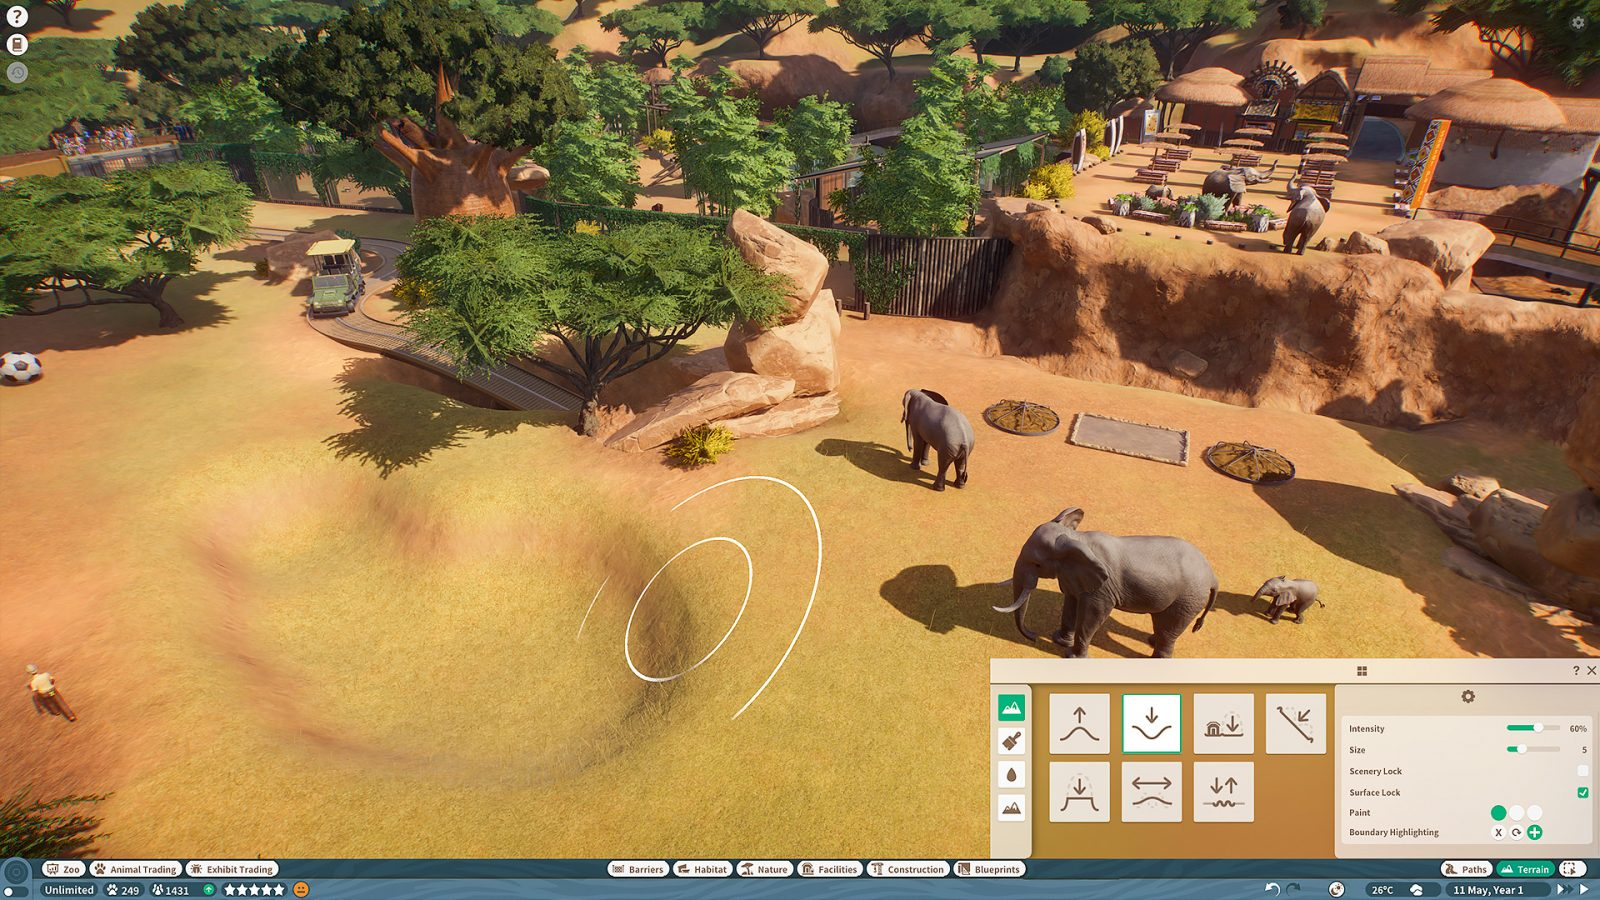 Watch 18 Minutes of Gameplay in New Planet Zoo Walkthrough